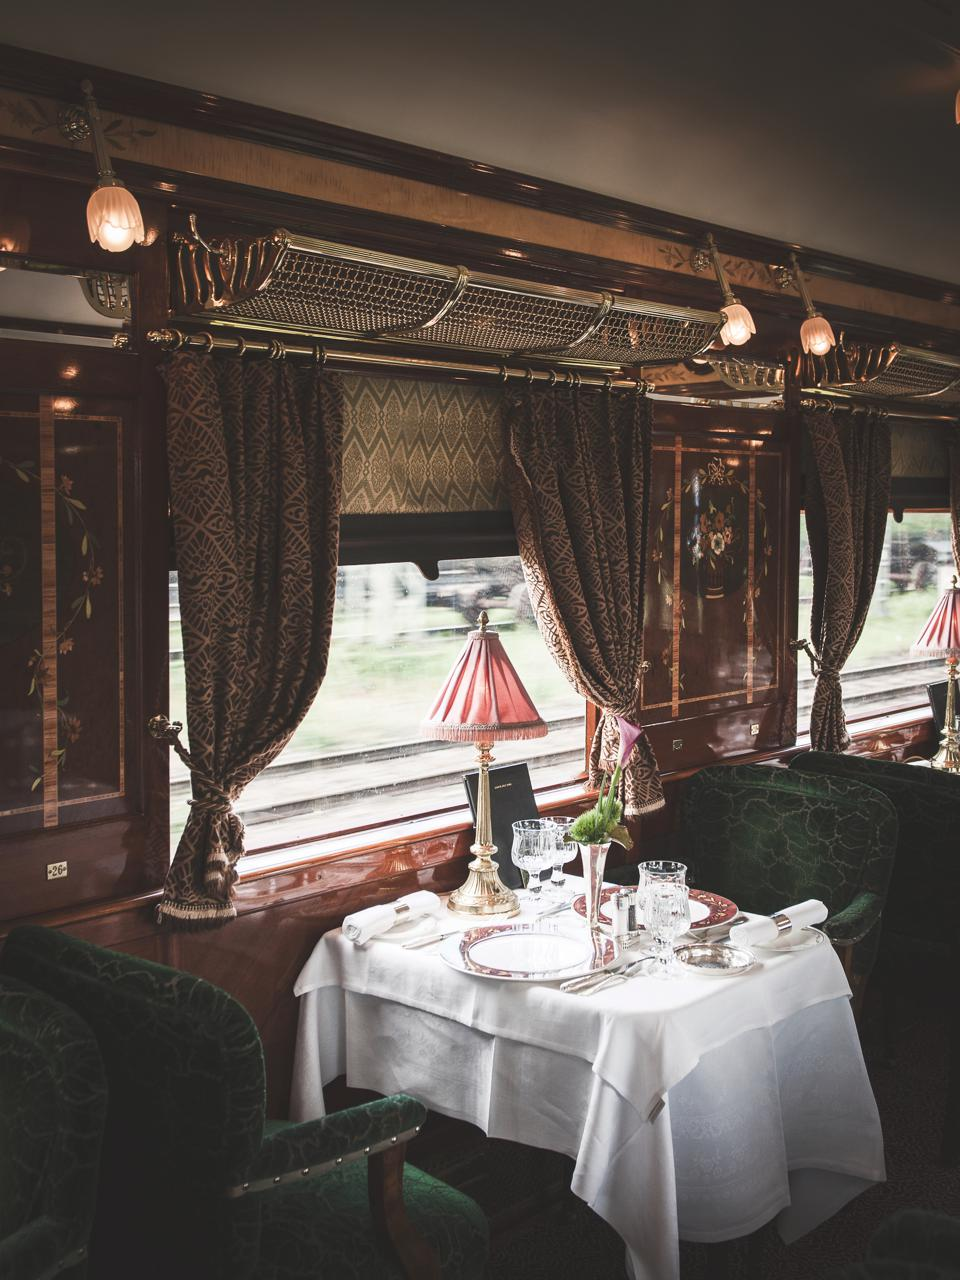 One of the three restaurants aboard the Venice Simplon-Orient-Express